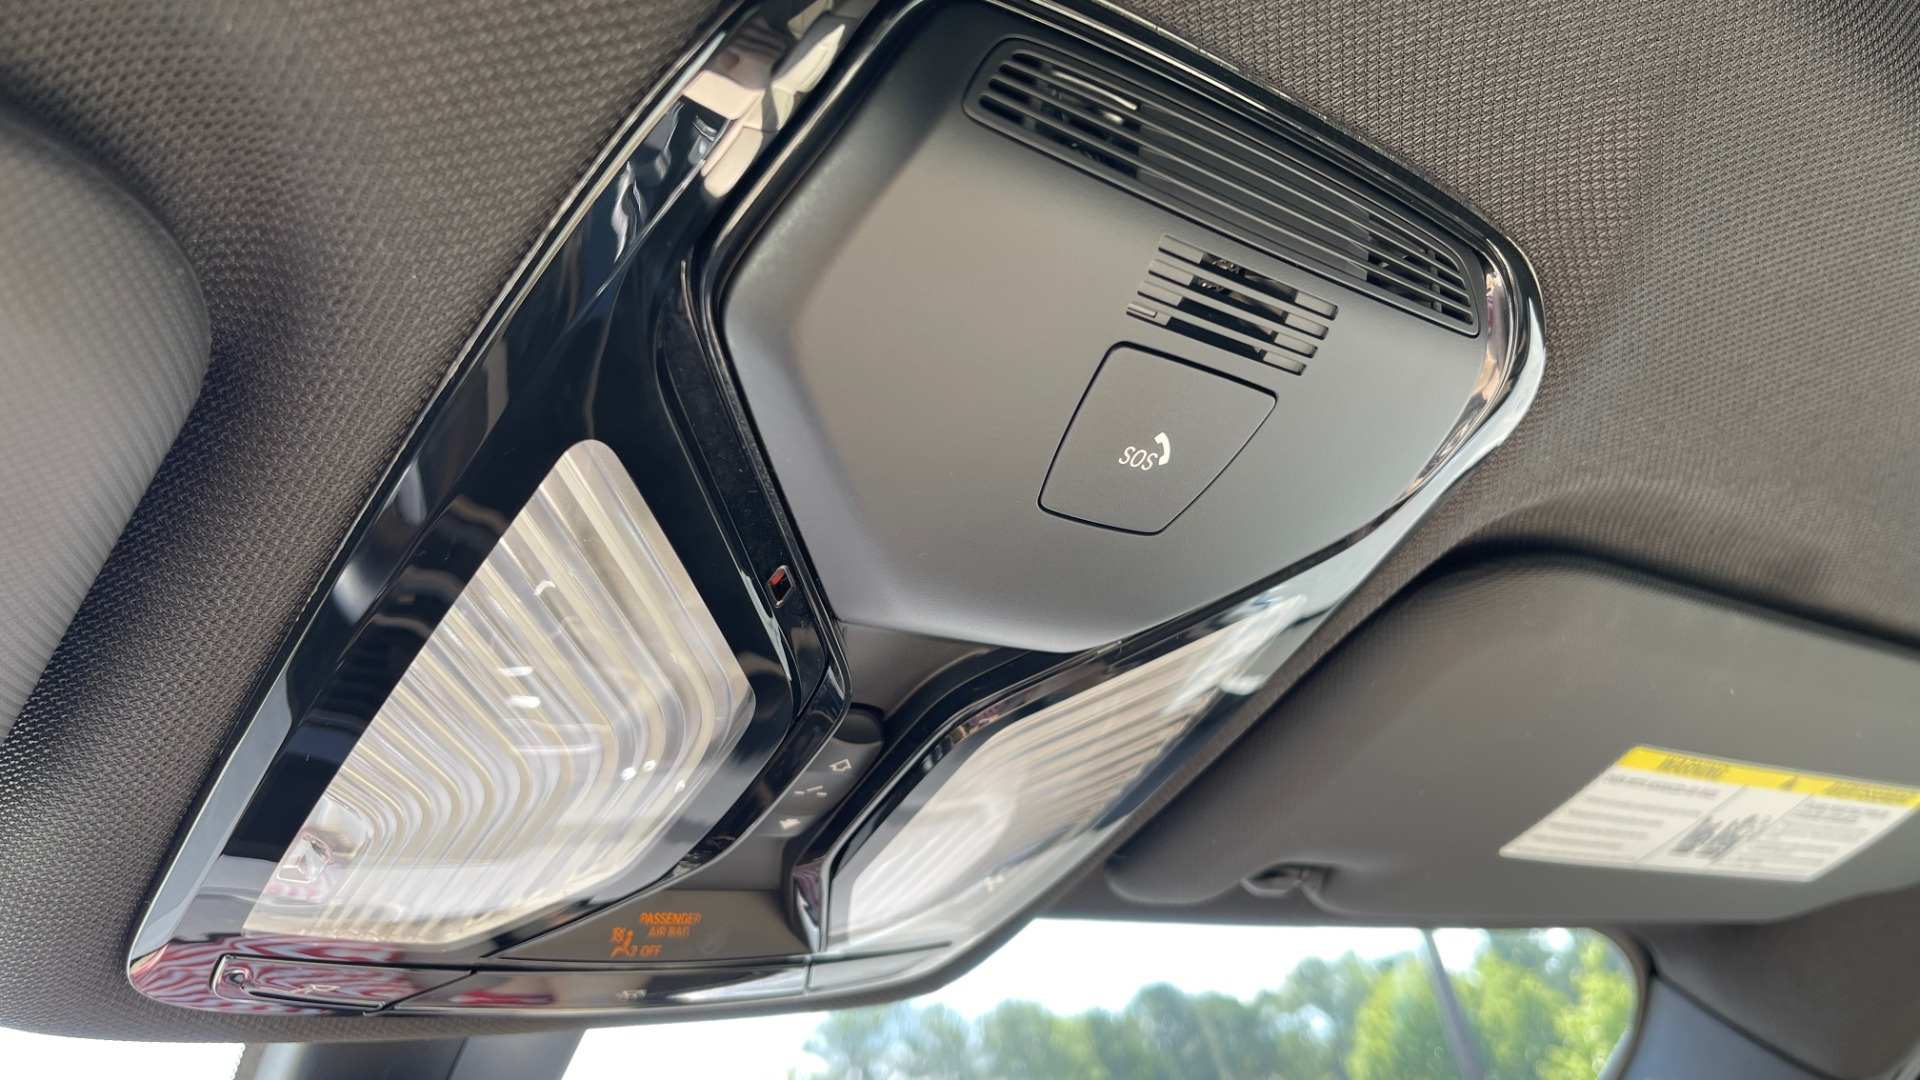 Used 2018 BMW X3 XDRIVE30I CONVENIENCE PKG / HEATED FRONT SEATS / REARVIEW for sale $36,595 at Formula Imports in Charlotte NC 28227 49